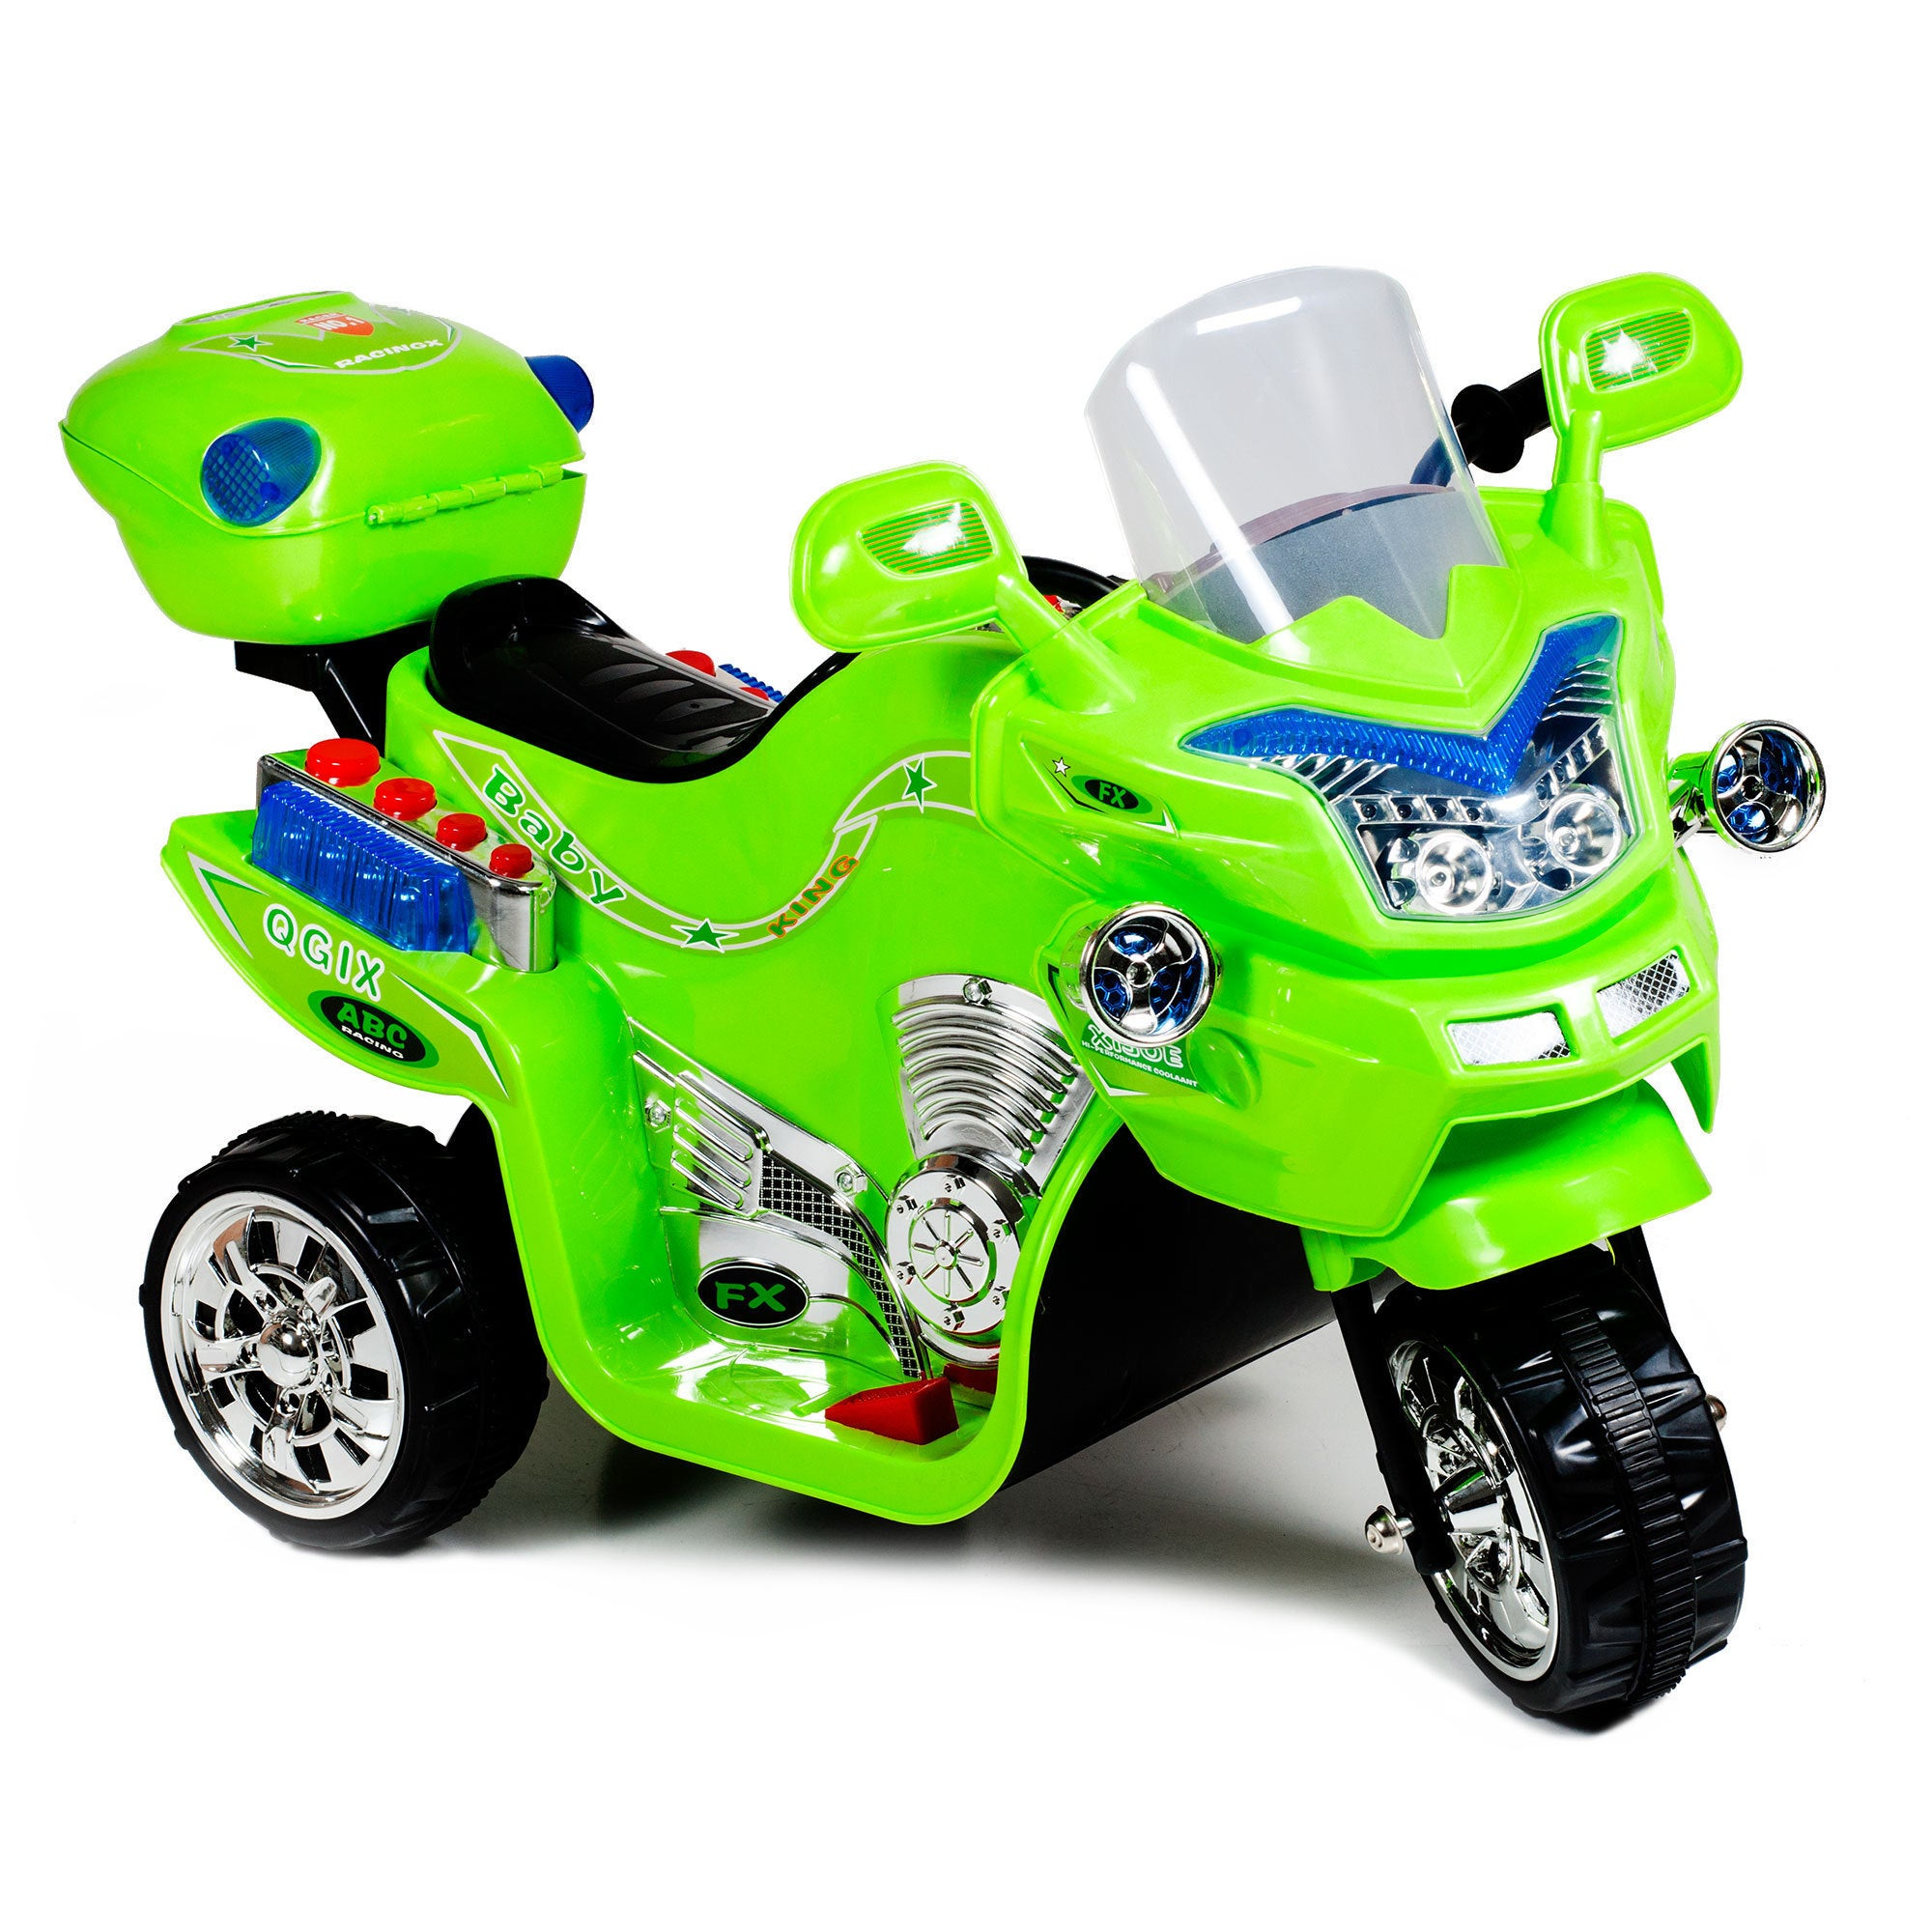 Battery Operated Ride On Toys >> Ride On Toy 3 Wheel Motorcycle For Kids Battery Powered Ride On Toy By Lil Rider Ride On Toys For Boys Girls